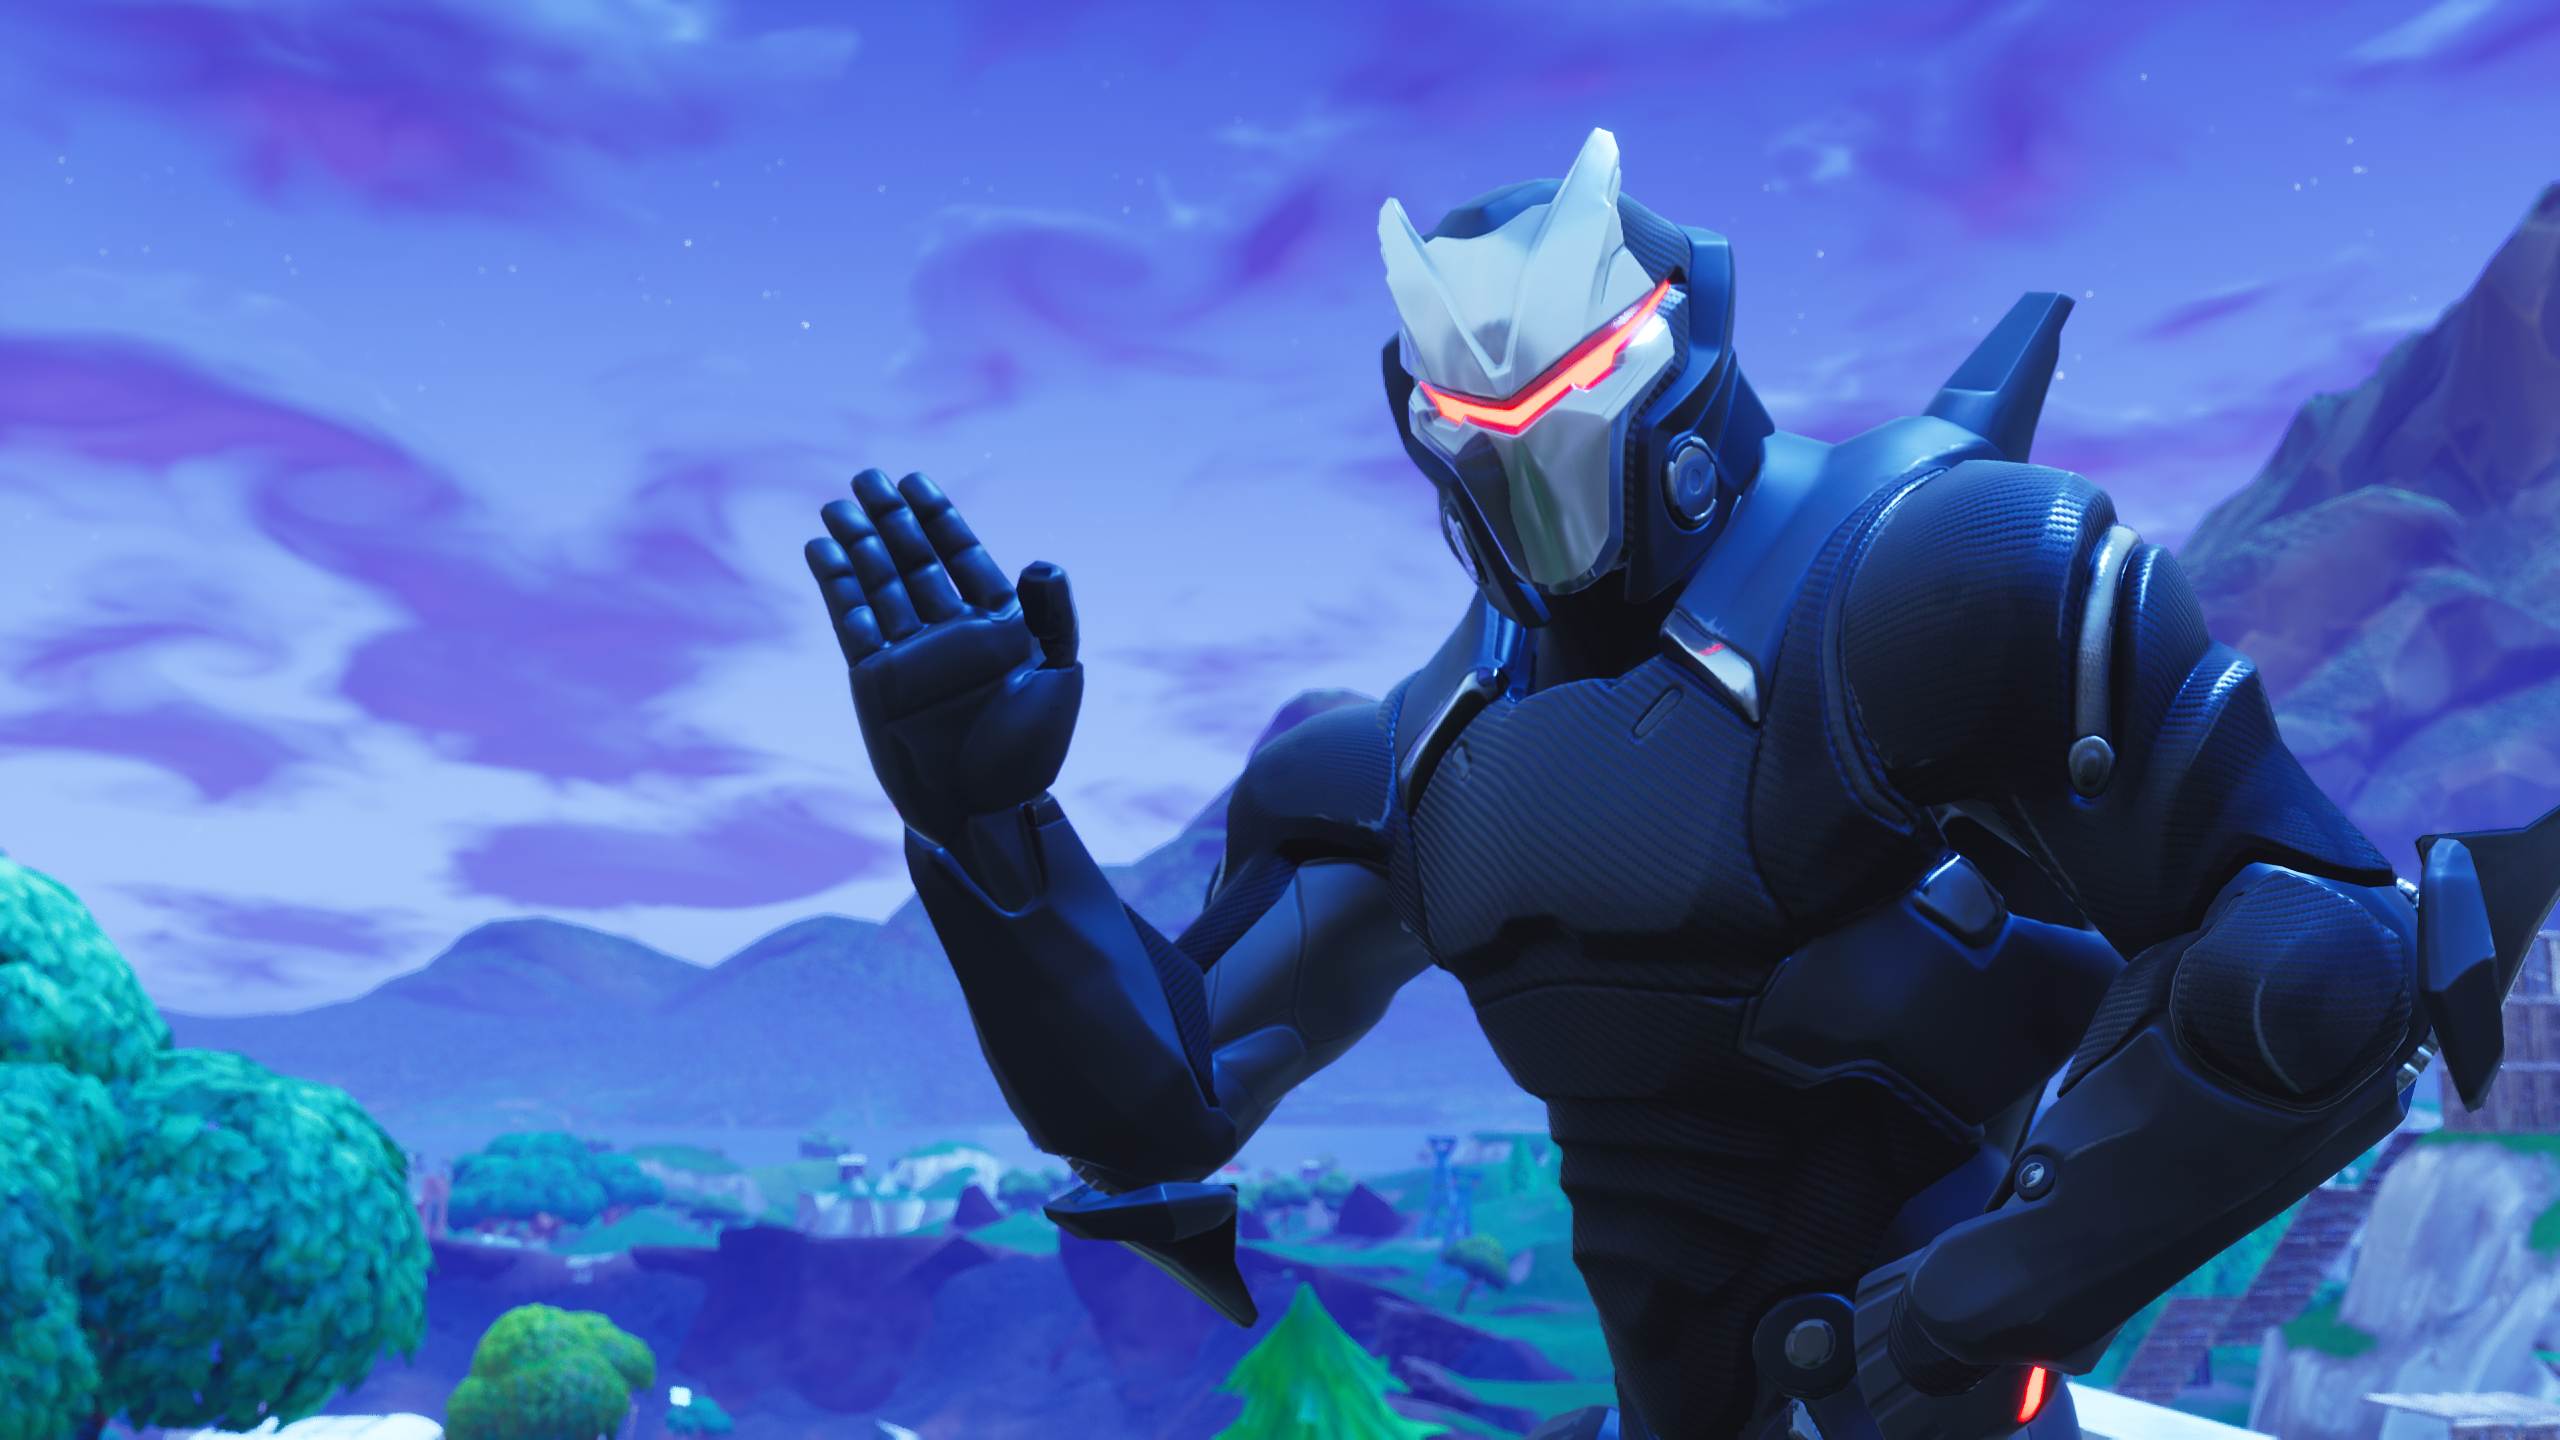 17 Omega Fortnite Wallpapers On Wallpapersafari